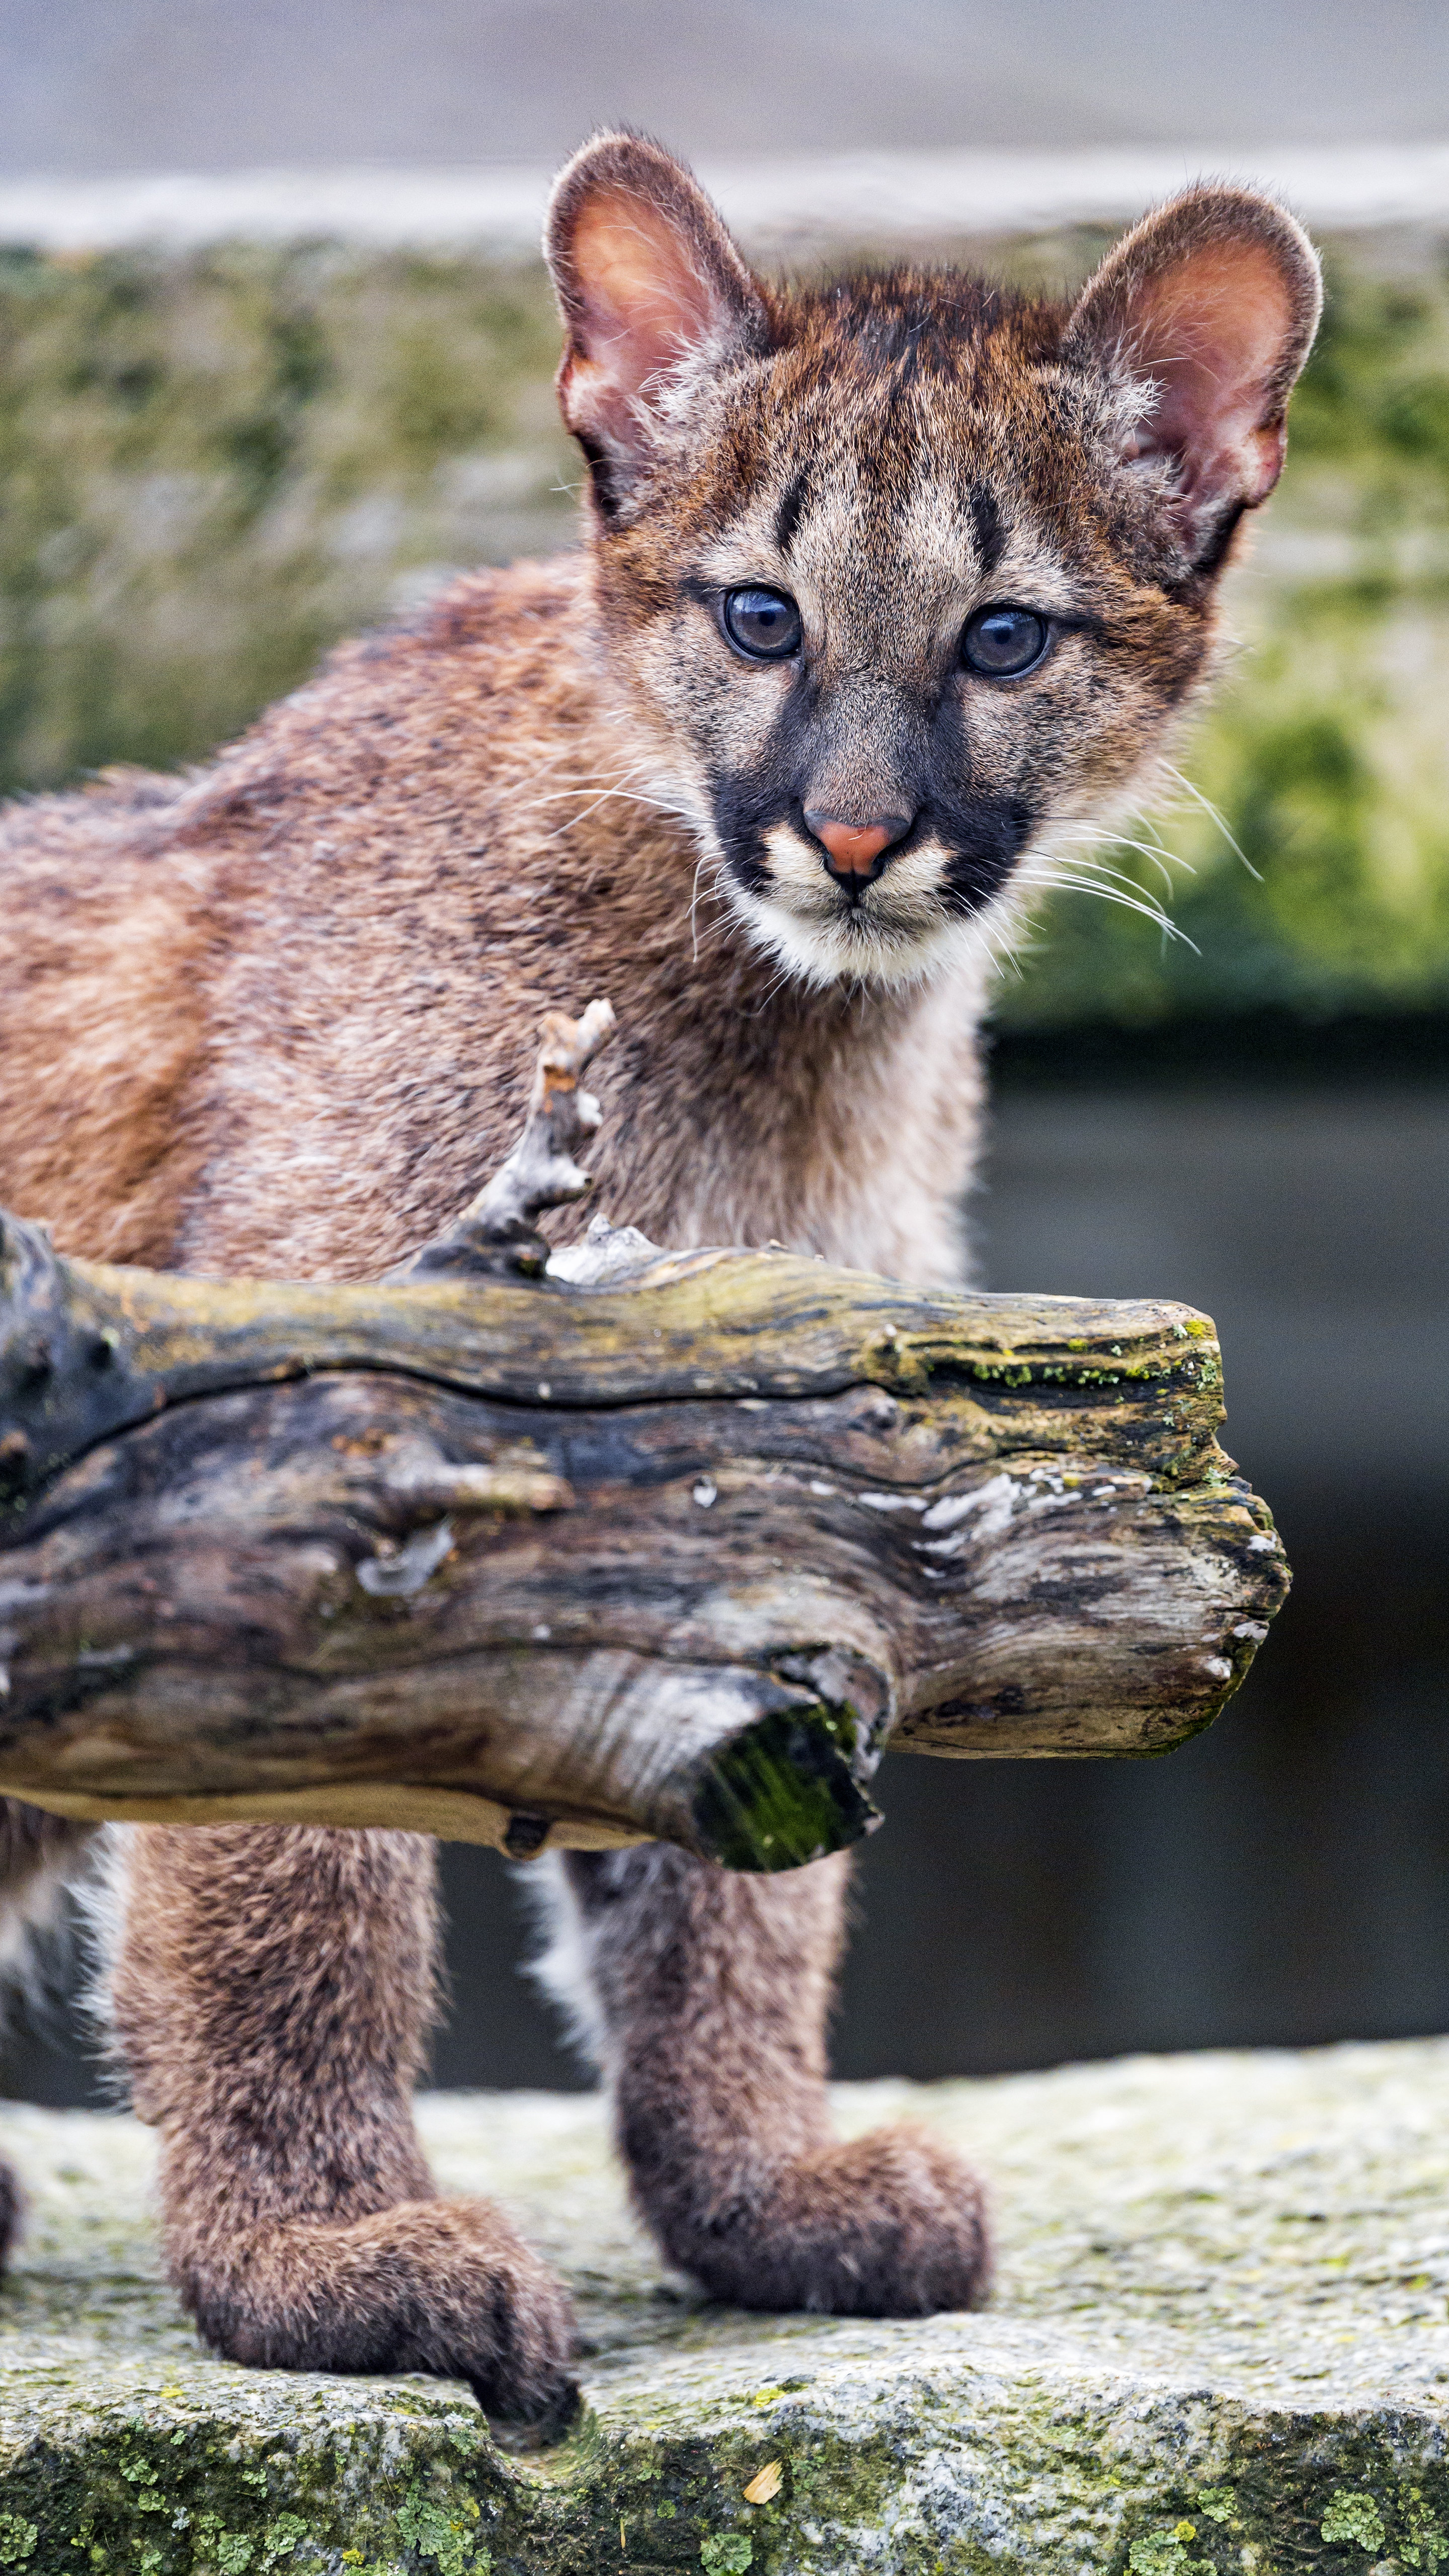 72040 download wallpaper Animals, Puma, Young, Joey, Nice, Sweetheart, Sight, Opinion screensavers and pictures for free